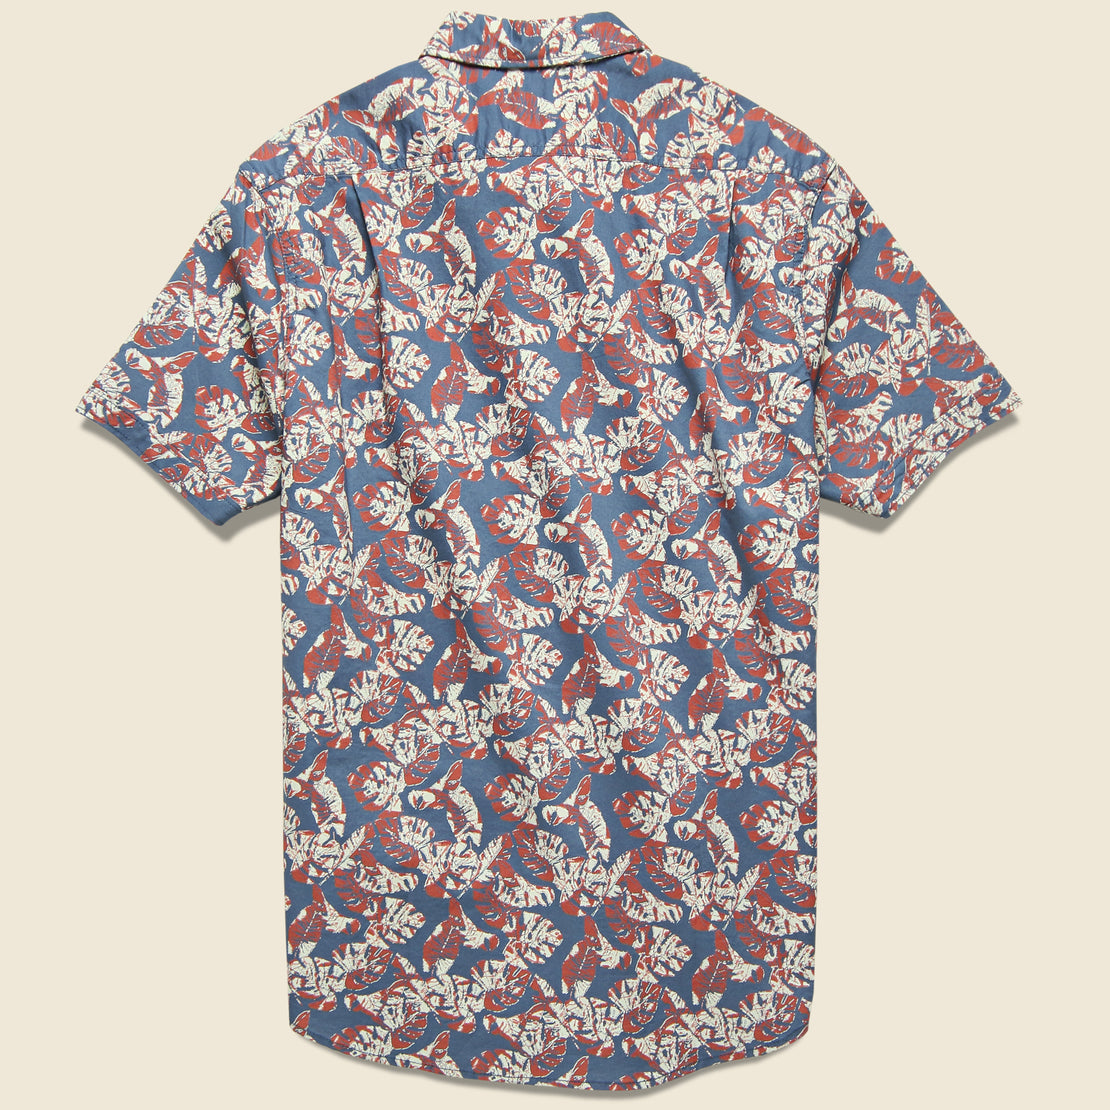 Floral Printed Gauze Shirt - Faded Navy/Red/Cream